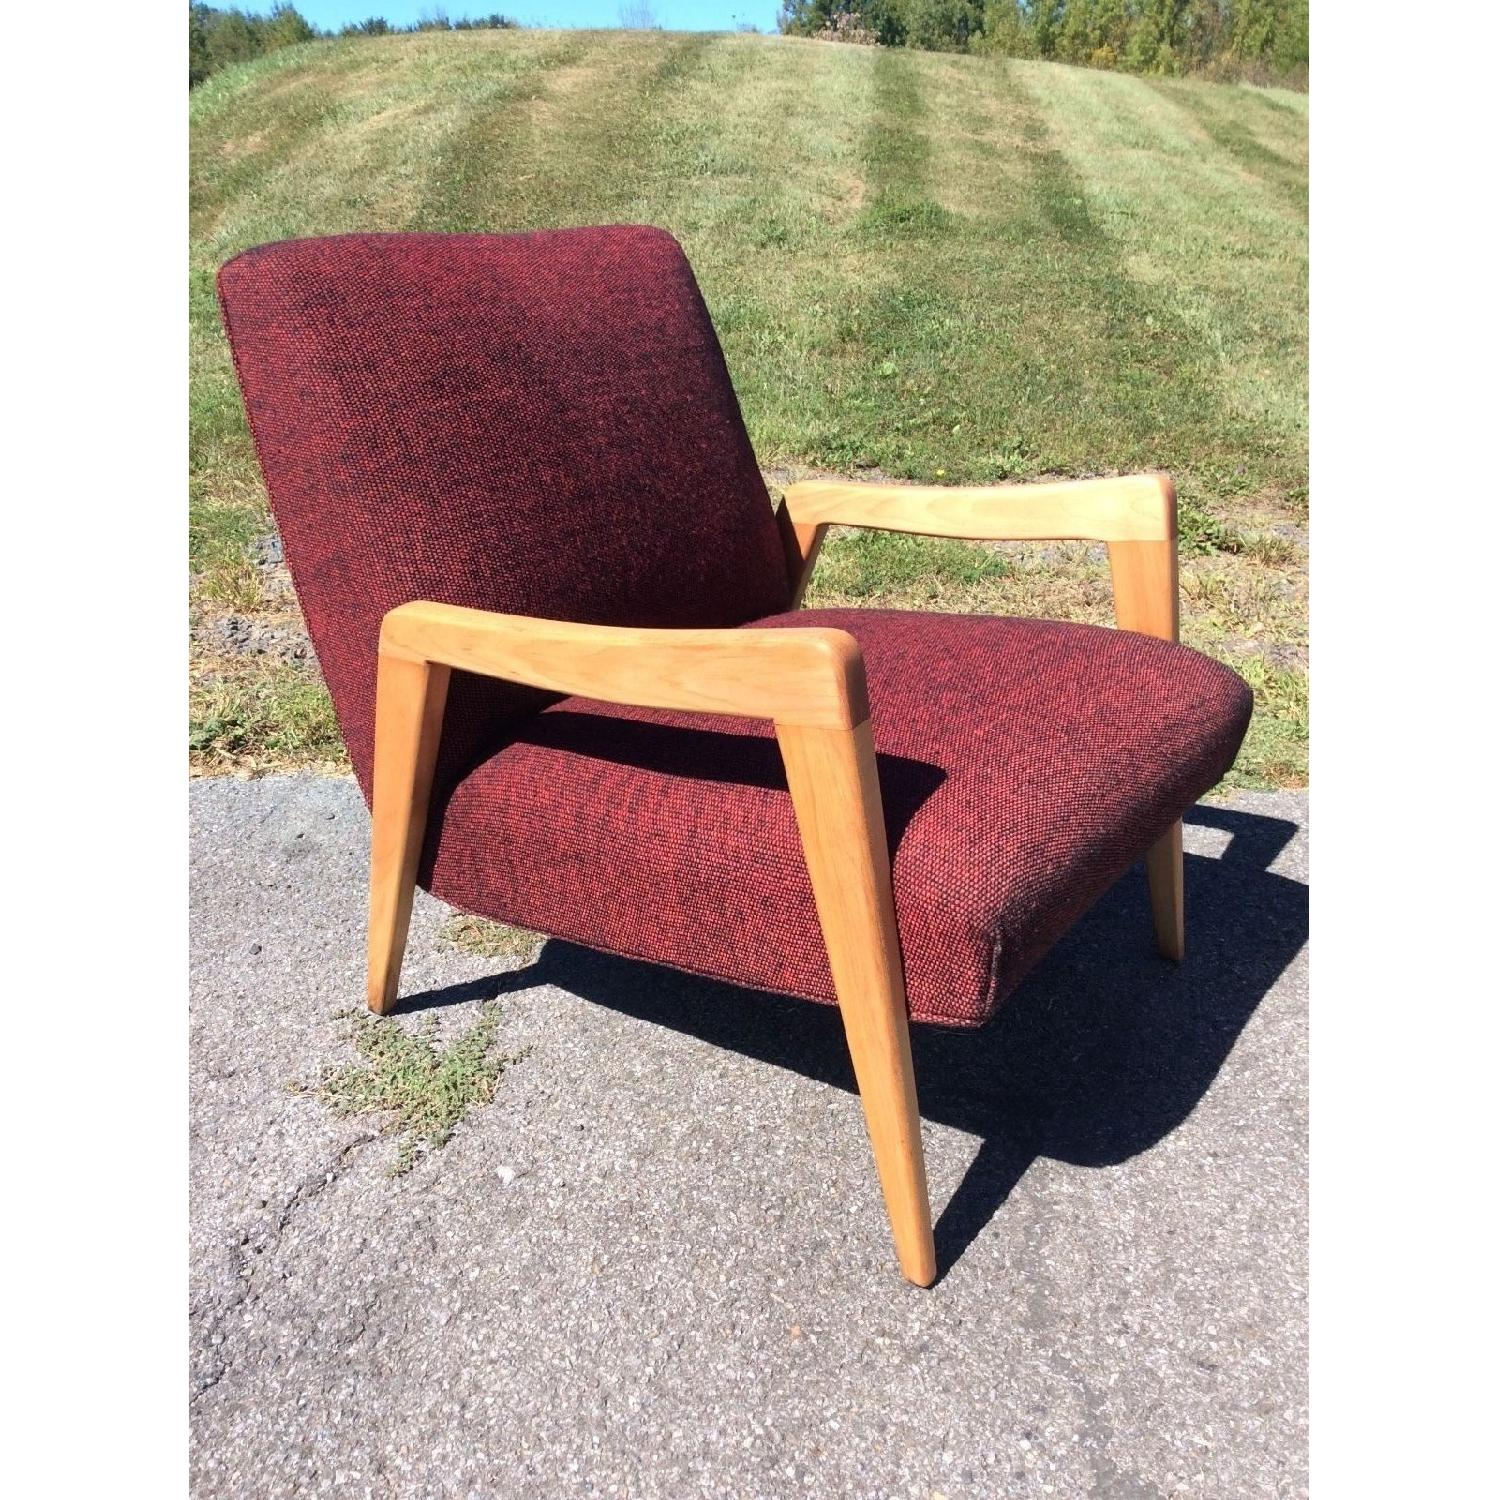 Russel Wright Conant Ball Birch Mid Century Modern Lounge Chair - image-1